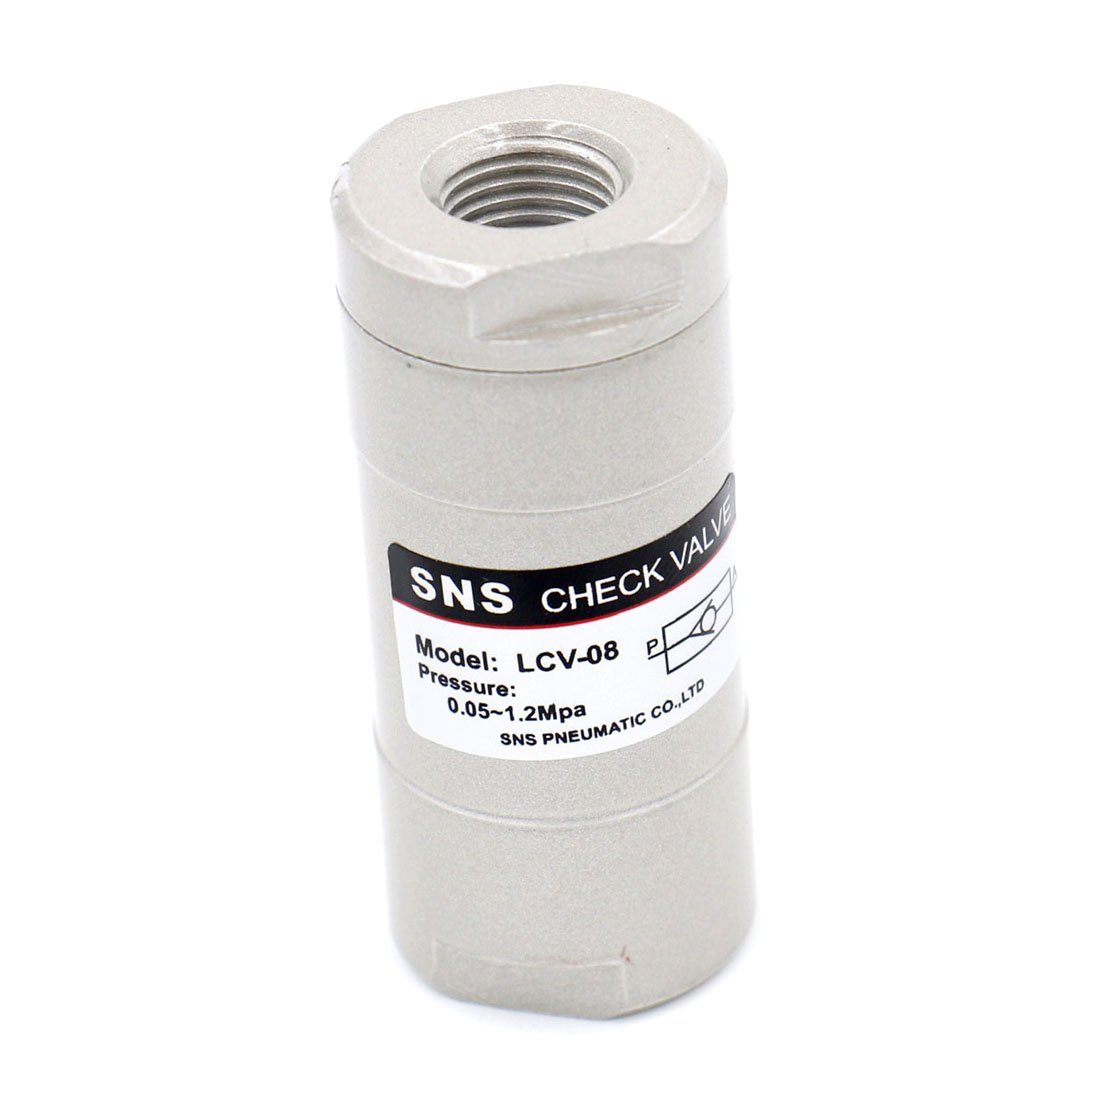 Sale Baomain Check Valve LCV-08 1 4 Air inch Pneumatic Port Way One Over item handling